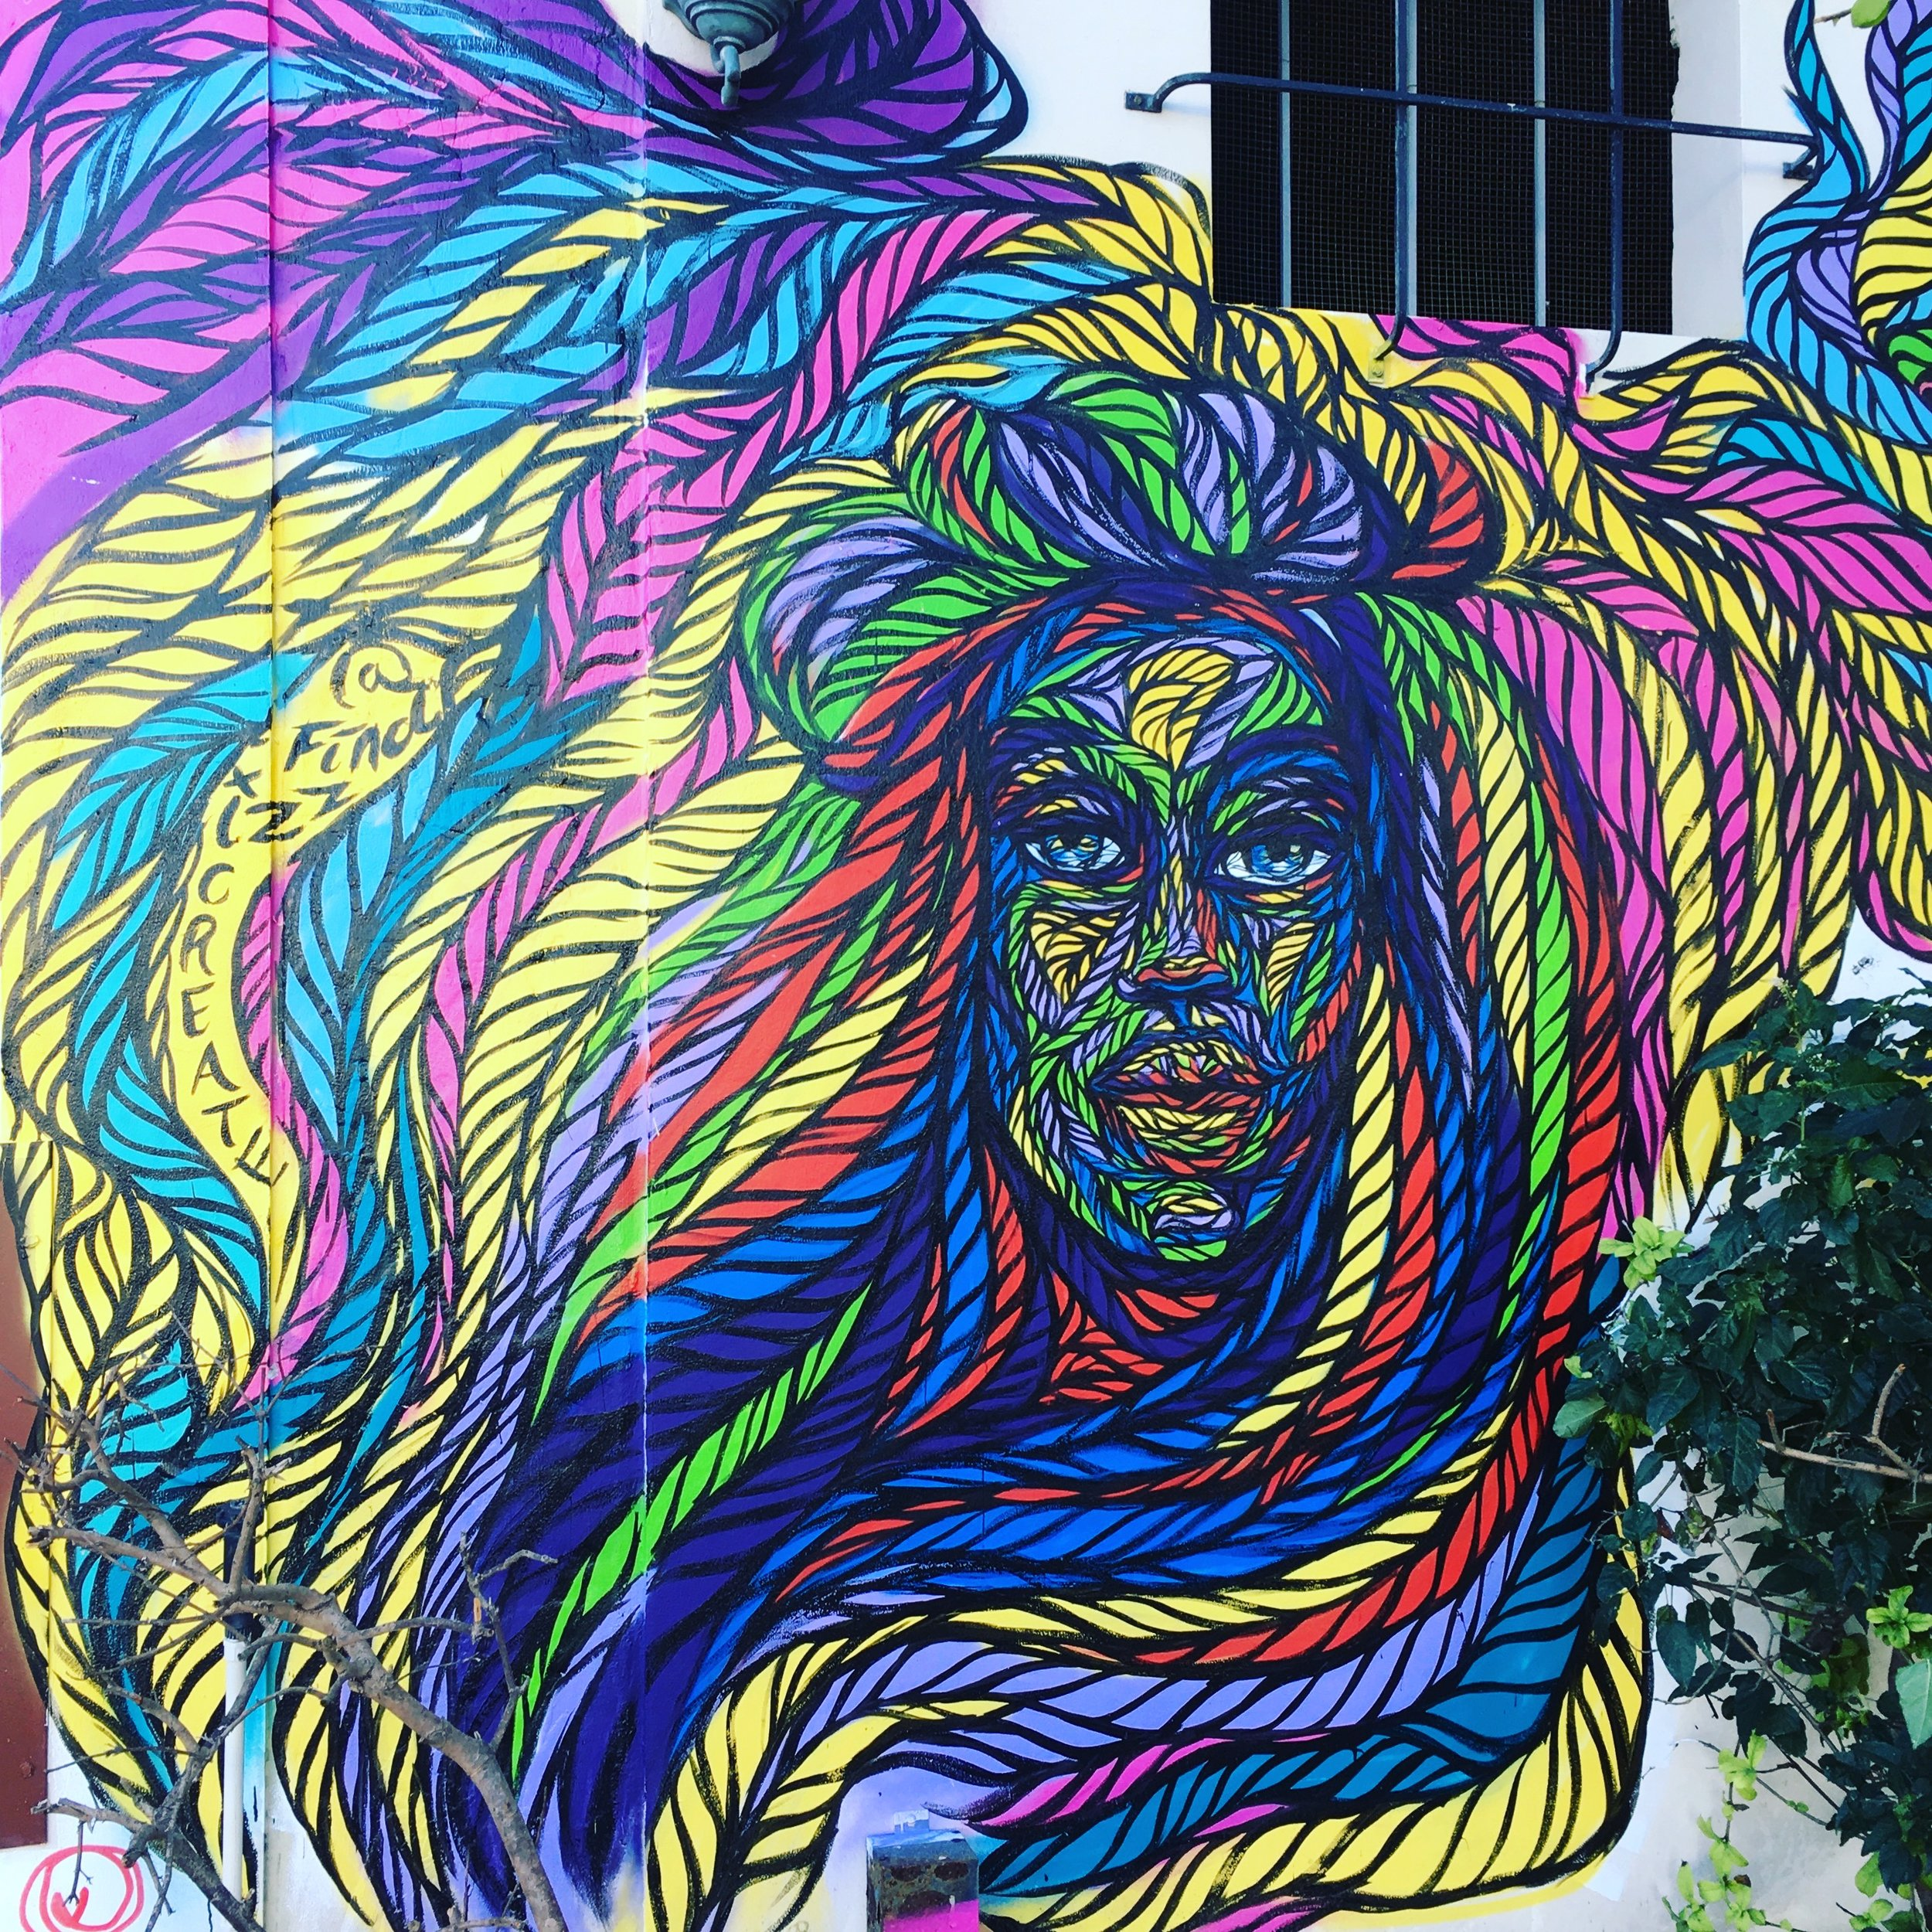 Miami Art Basel 2017 located on 2nd ave and 3rd Miami, FL